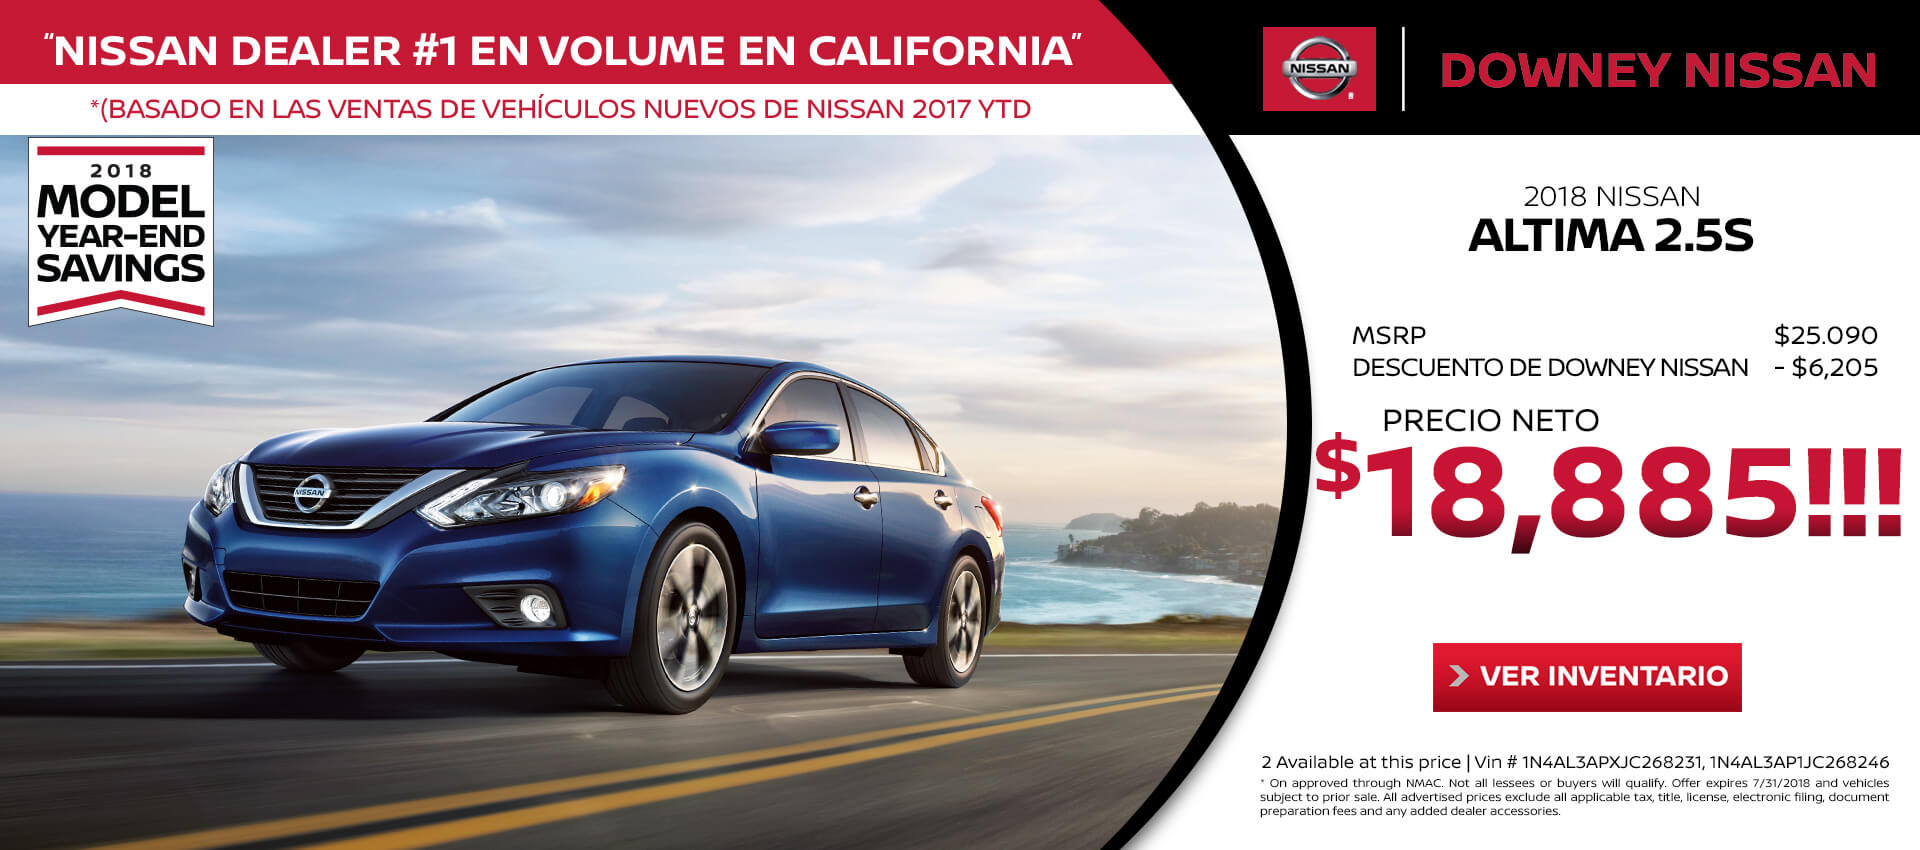 2018 Altima - Purchase for $18,885